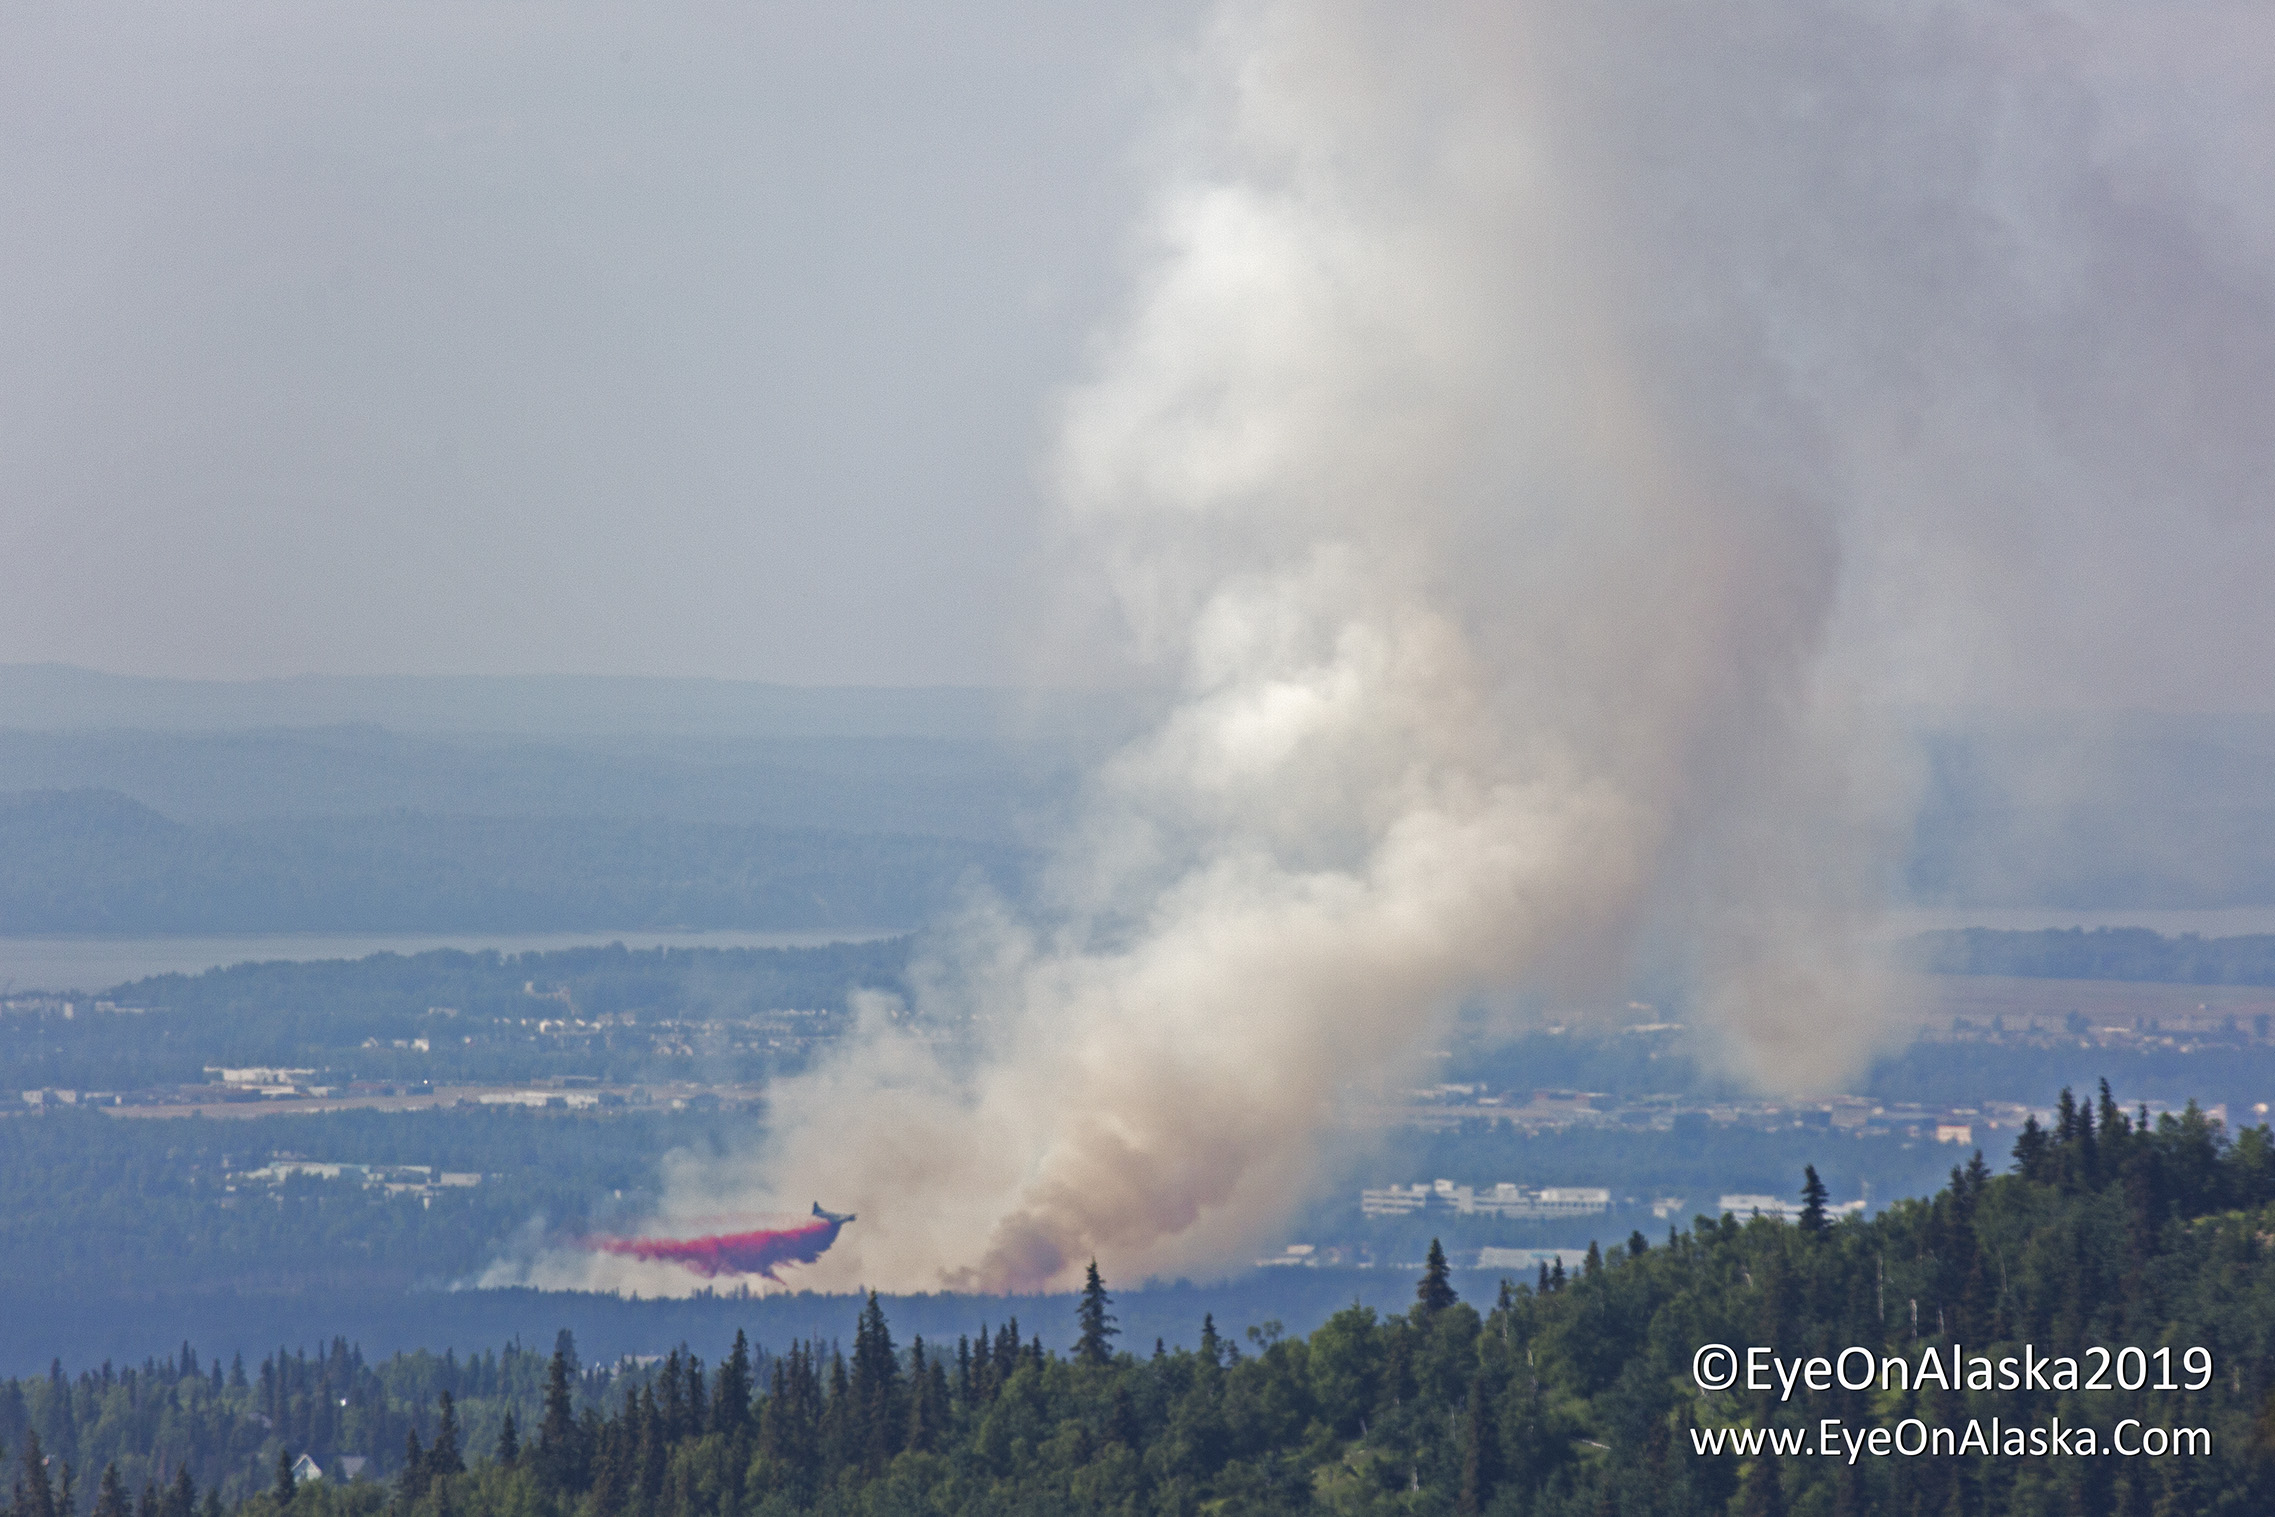 Retardant drop on the leading edge of the fire.